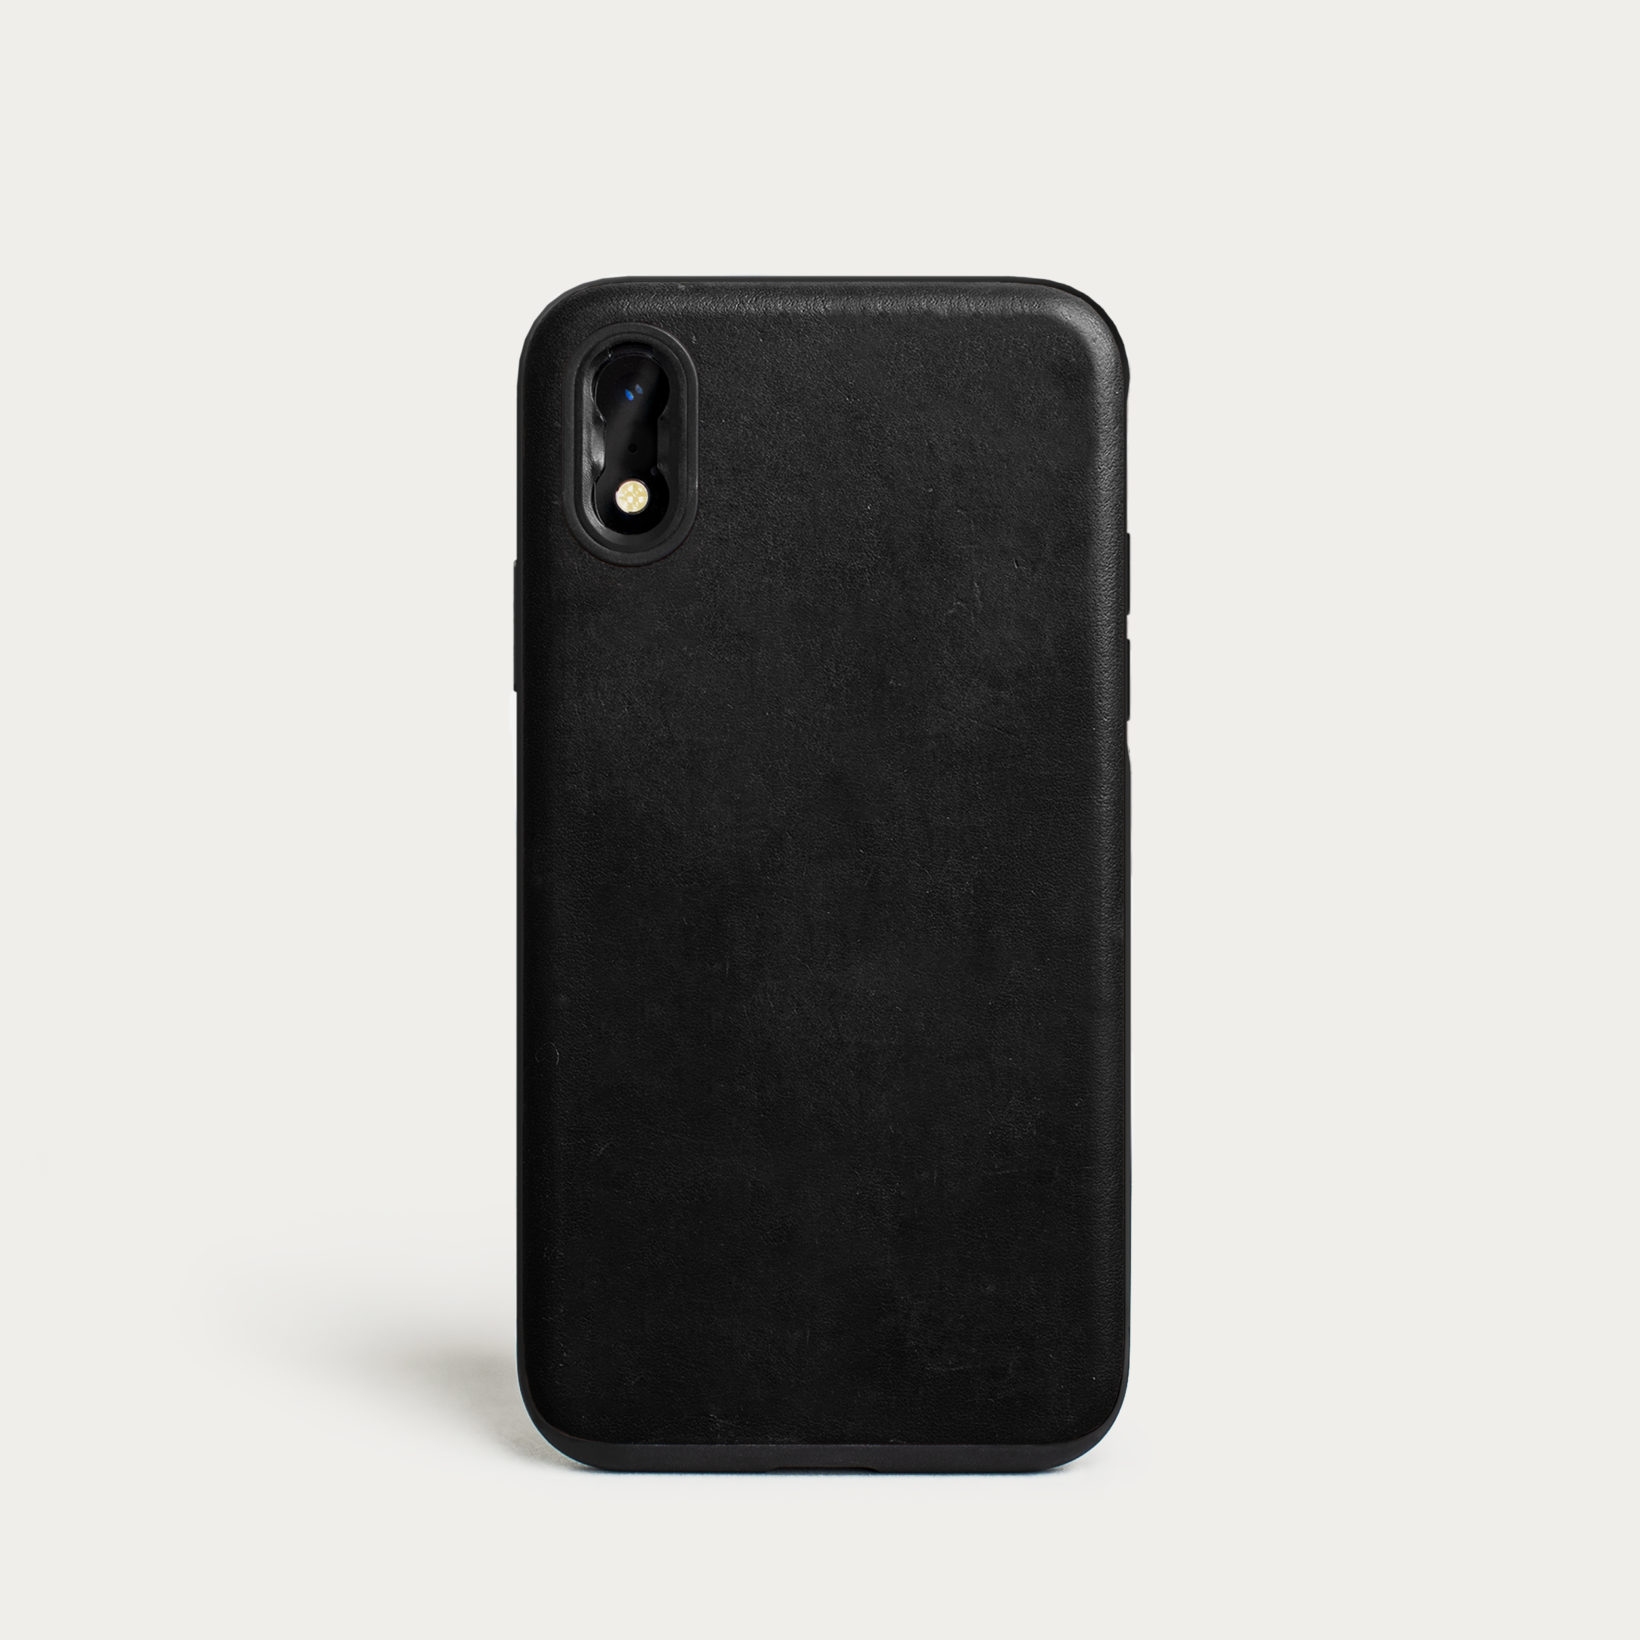 timeless design f8076 90a6f Nomad x Moment Rugged iPhone Case   iPhone XR - Nomad / Moment Rugged Case  Black Leather